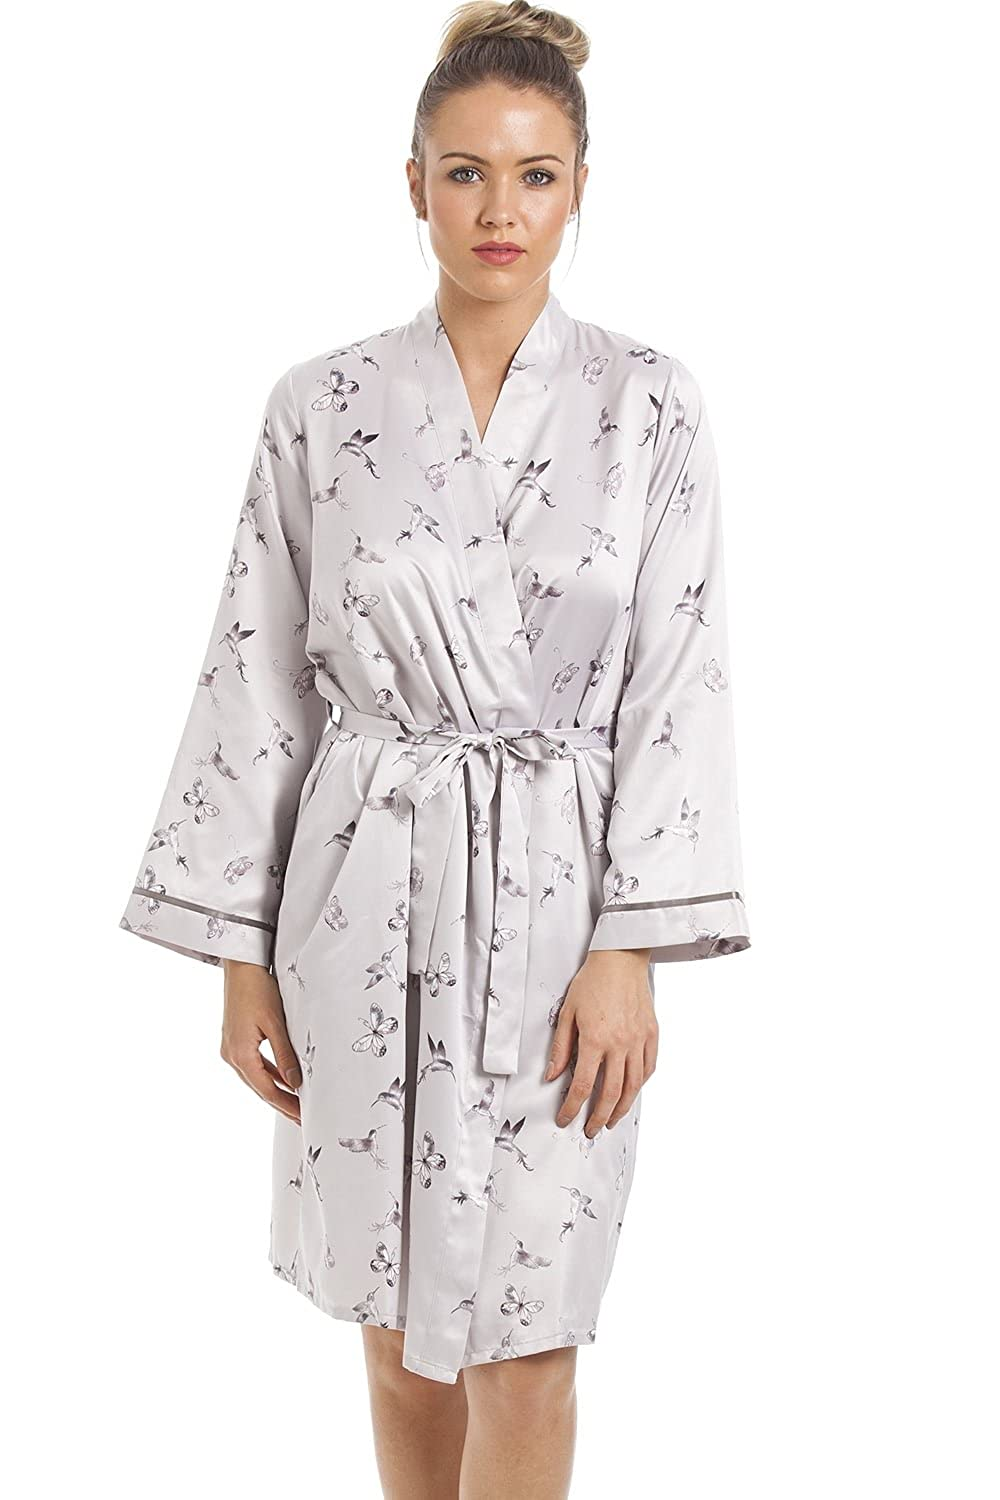 Camille Womens Ladies Silver Humming Bird and Butterfly Print Satin Wrap